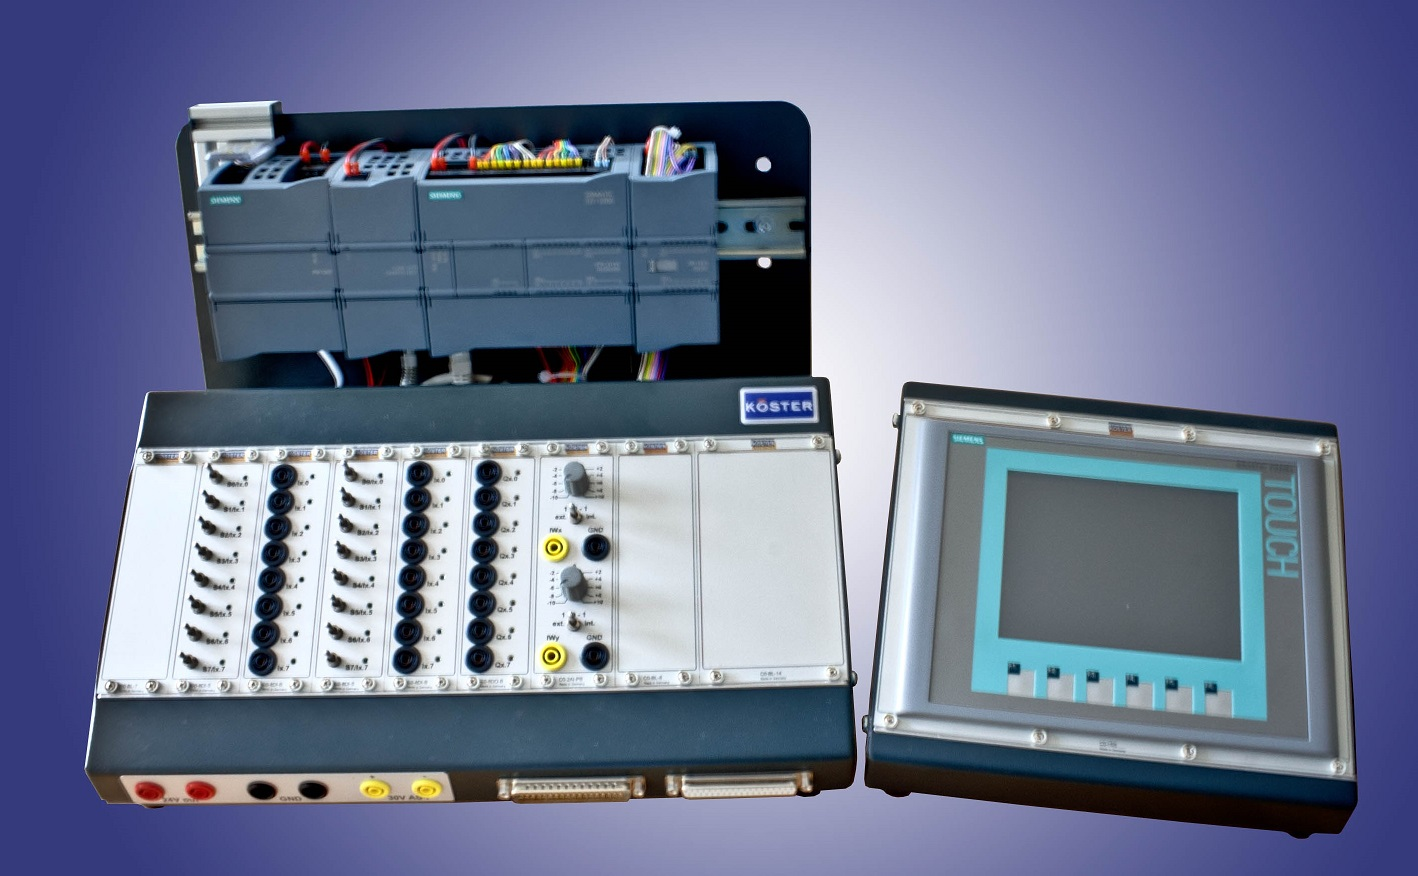 S7-1200 Trainer and HMI 2